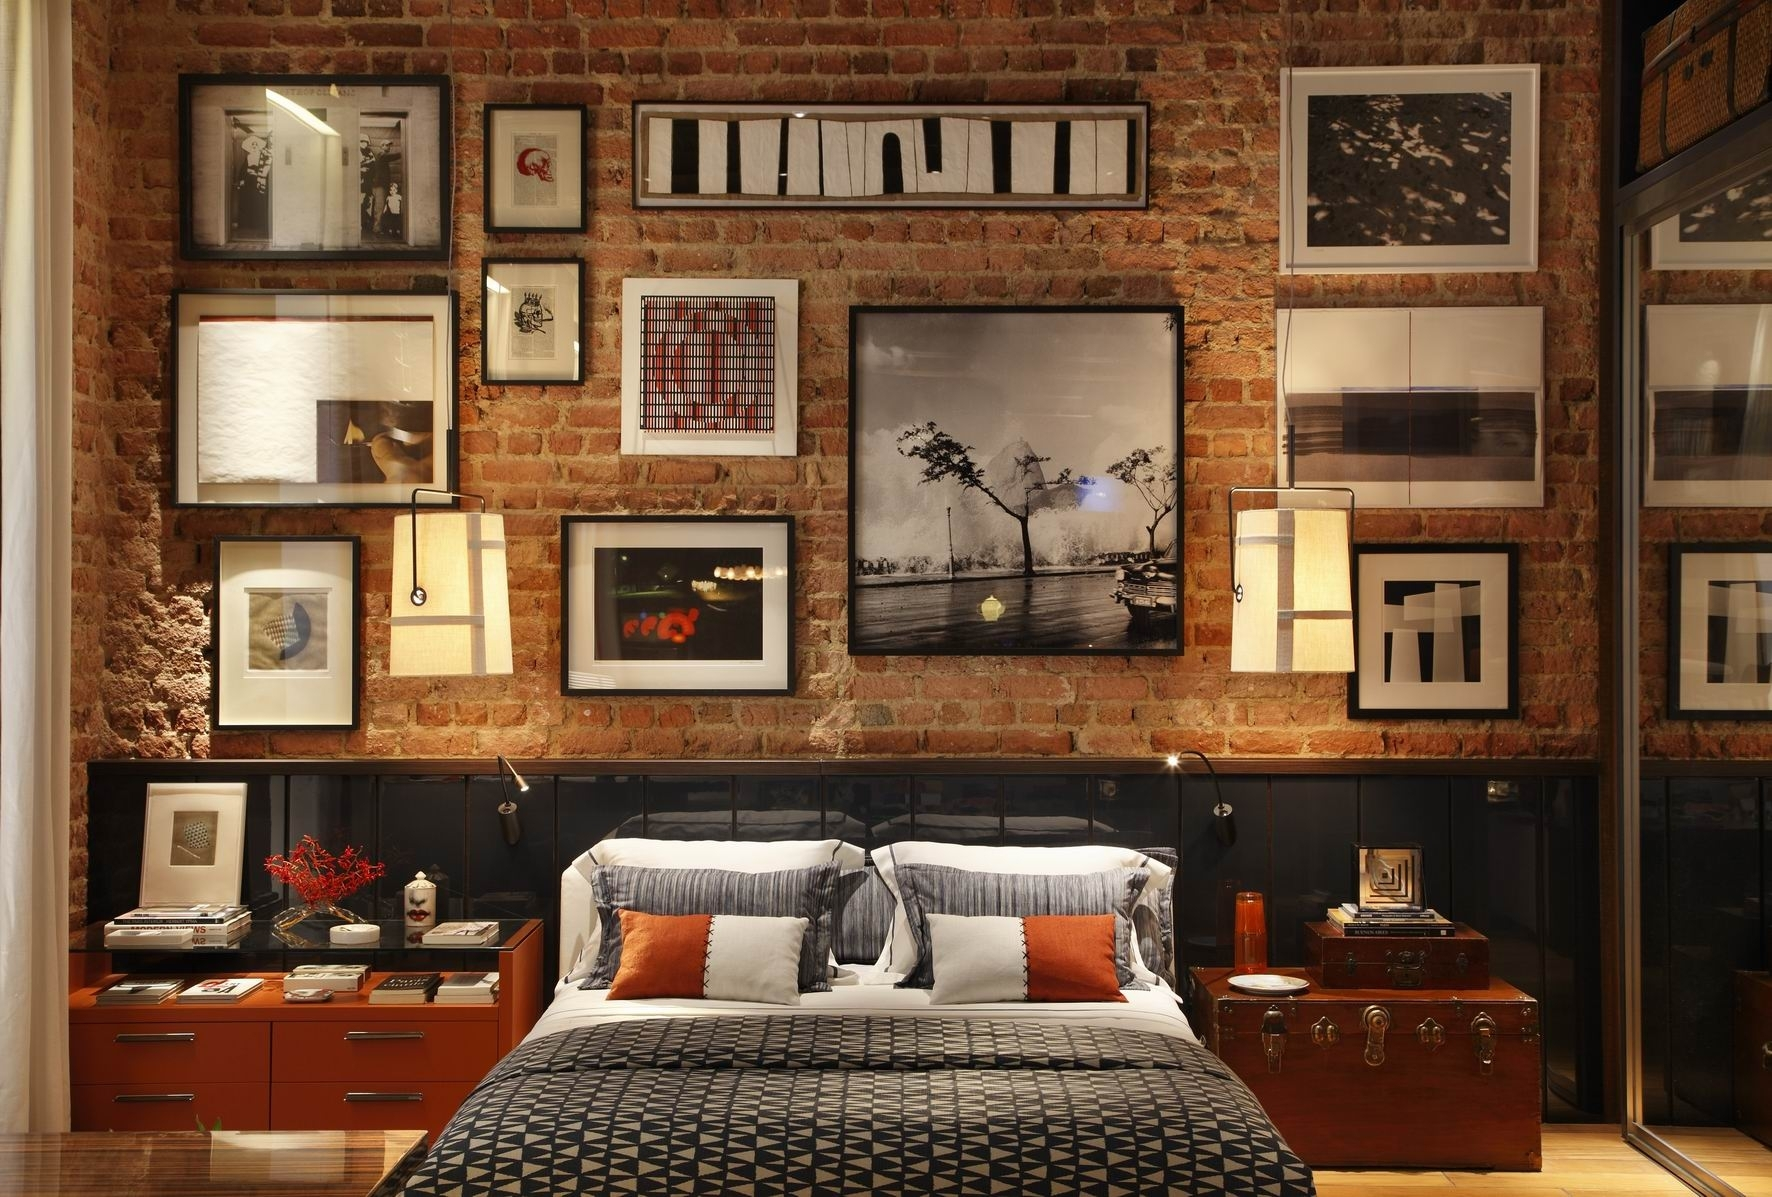 Inspirational Natural Master Bedroom Design Interior With Grand With Regard To 2018 Exposed Brick Wall Accents (View 3 of 15)